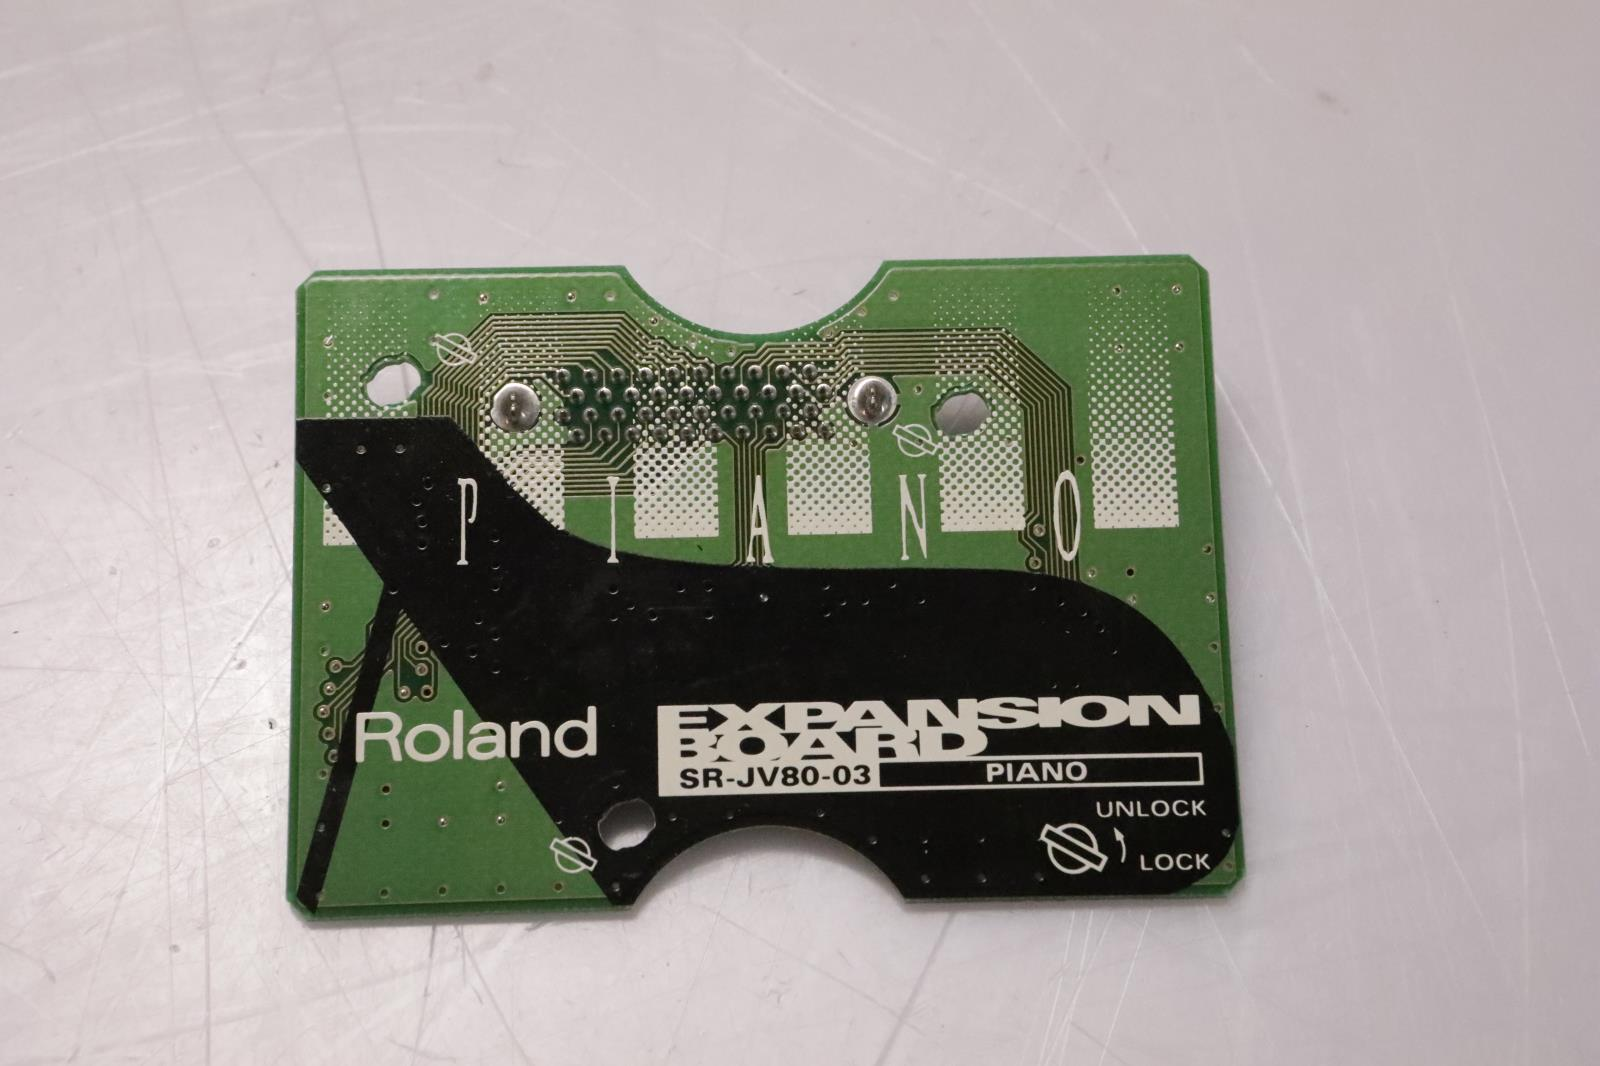 Roland SR-JV80-03 Piano Expansion Board Sound Card SRJV8003 #37005